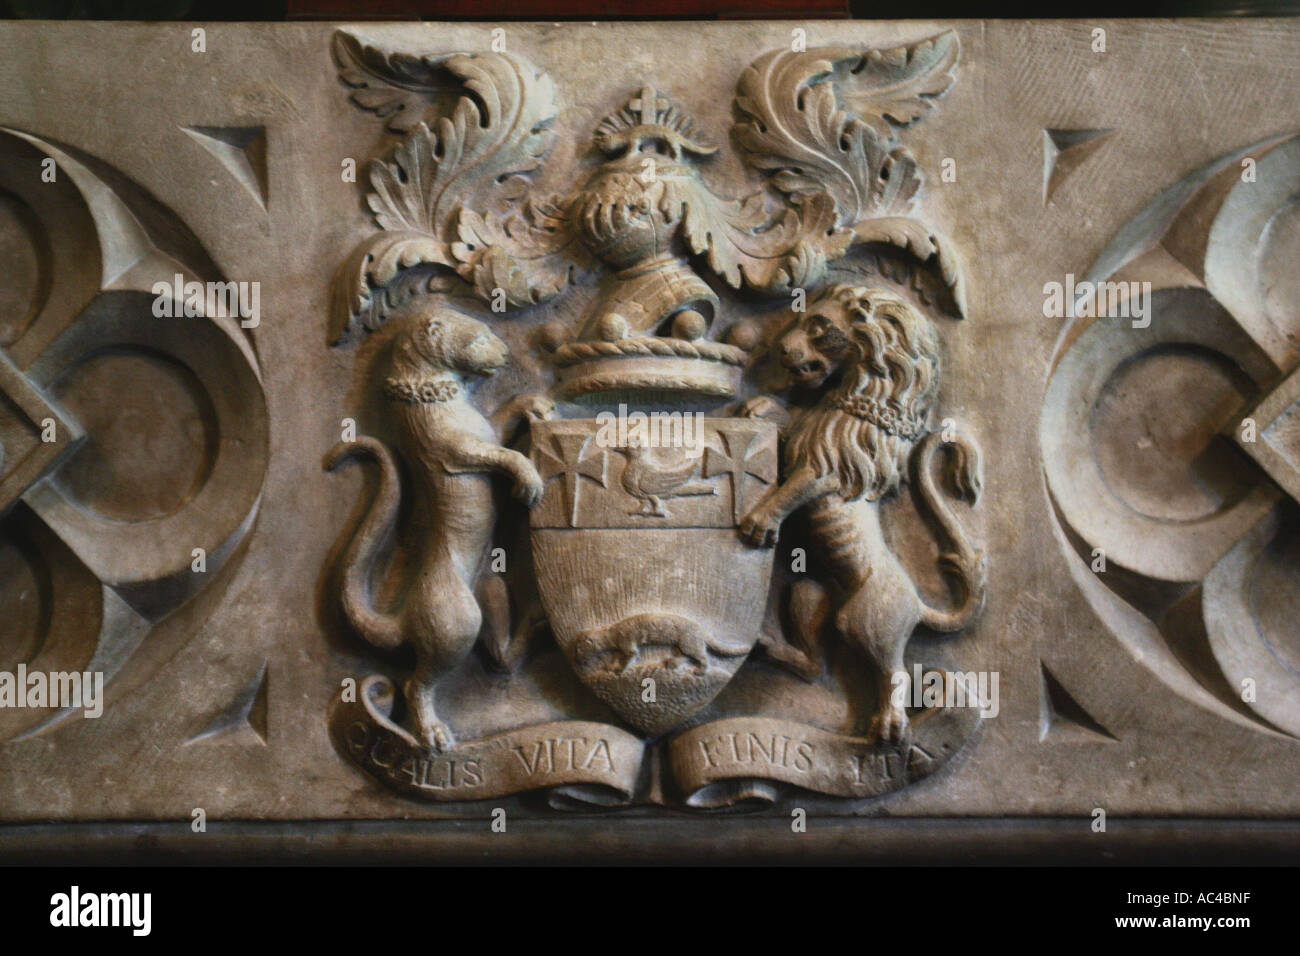 The Coleridge family crest at The Chanter's House, Ottery St Mary in Devon UK - Stock Image